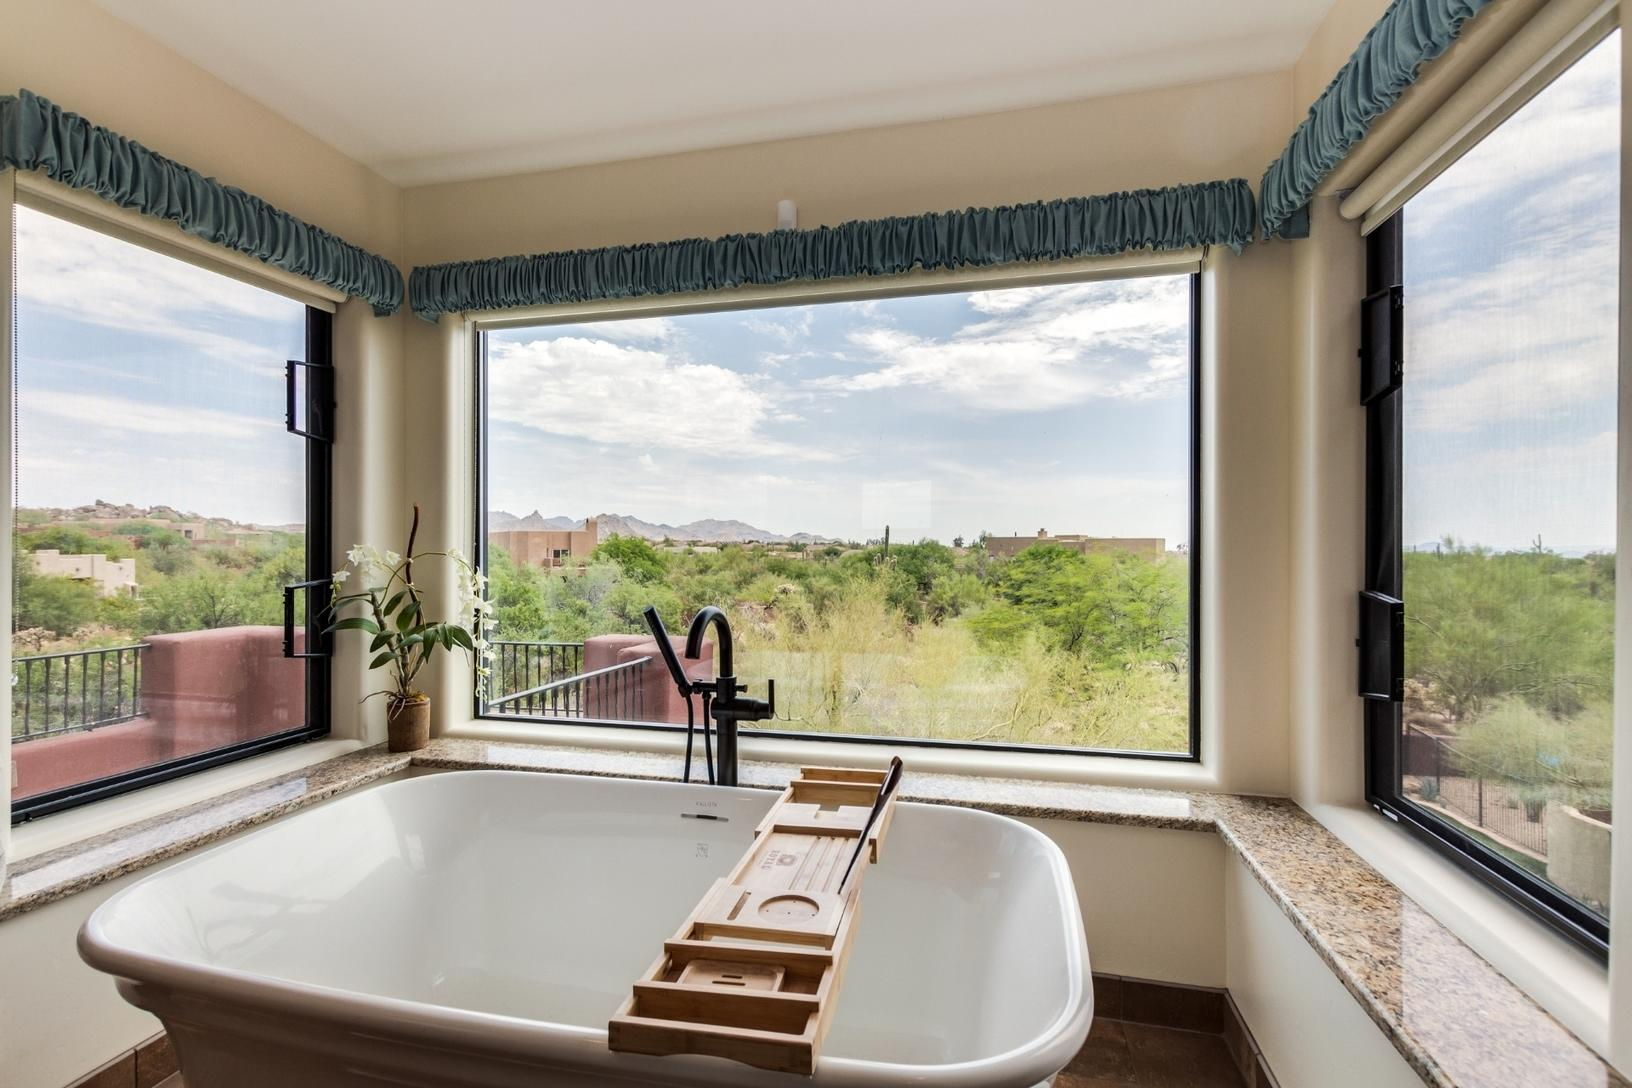 North Scottsdale Bathroom Remodels - North Scottdale ...